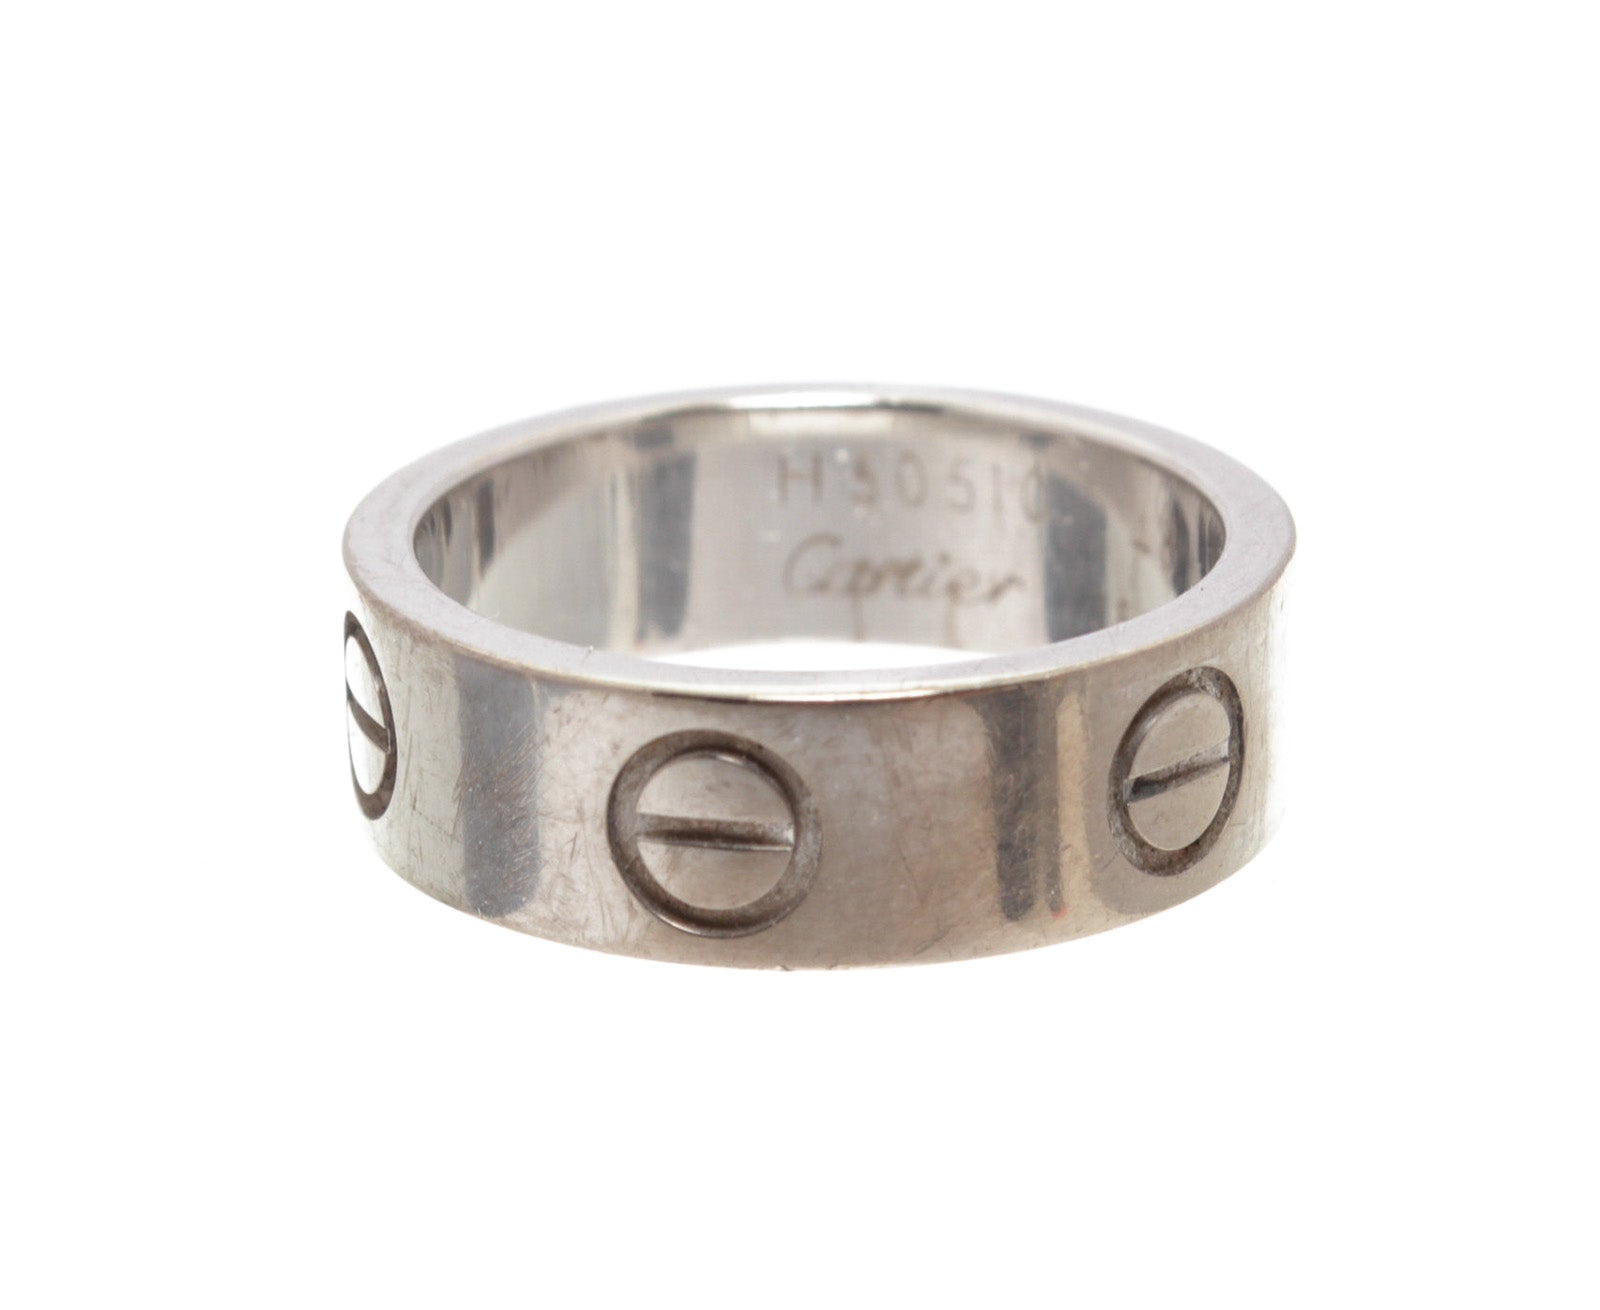 Cartier Rhodium-Plated 18K White Gold LOVE Ring 48